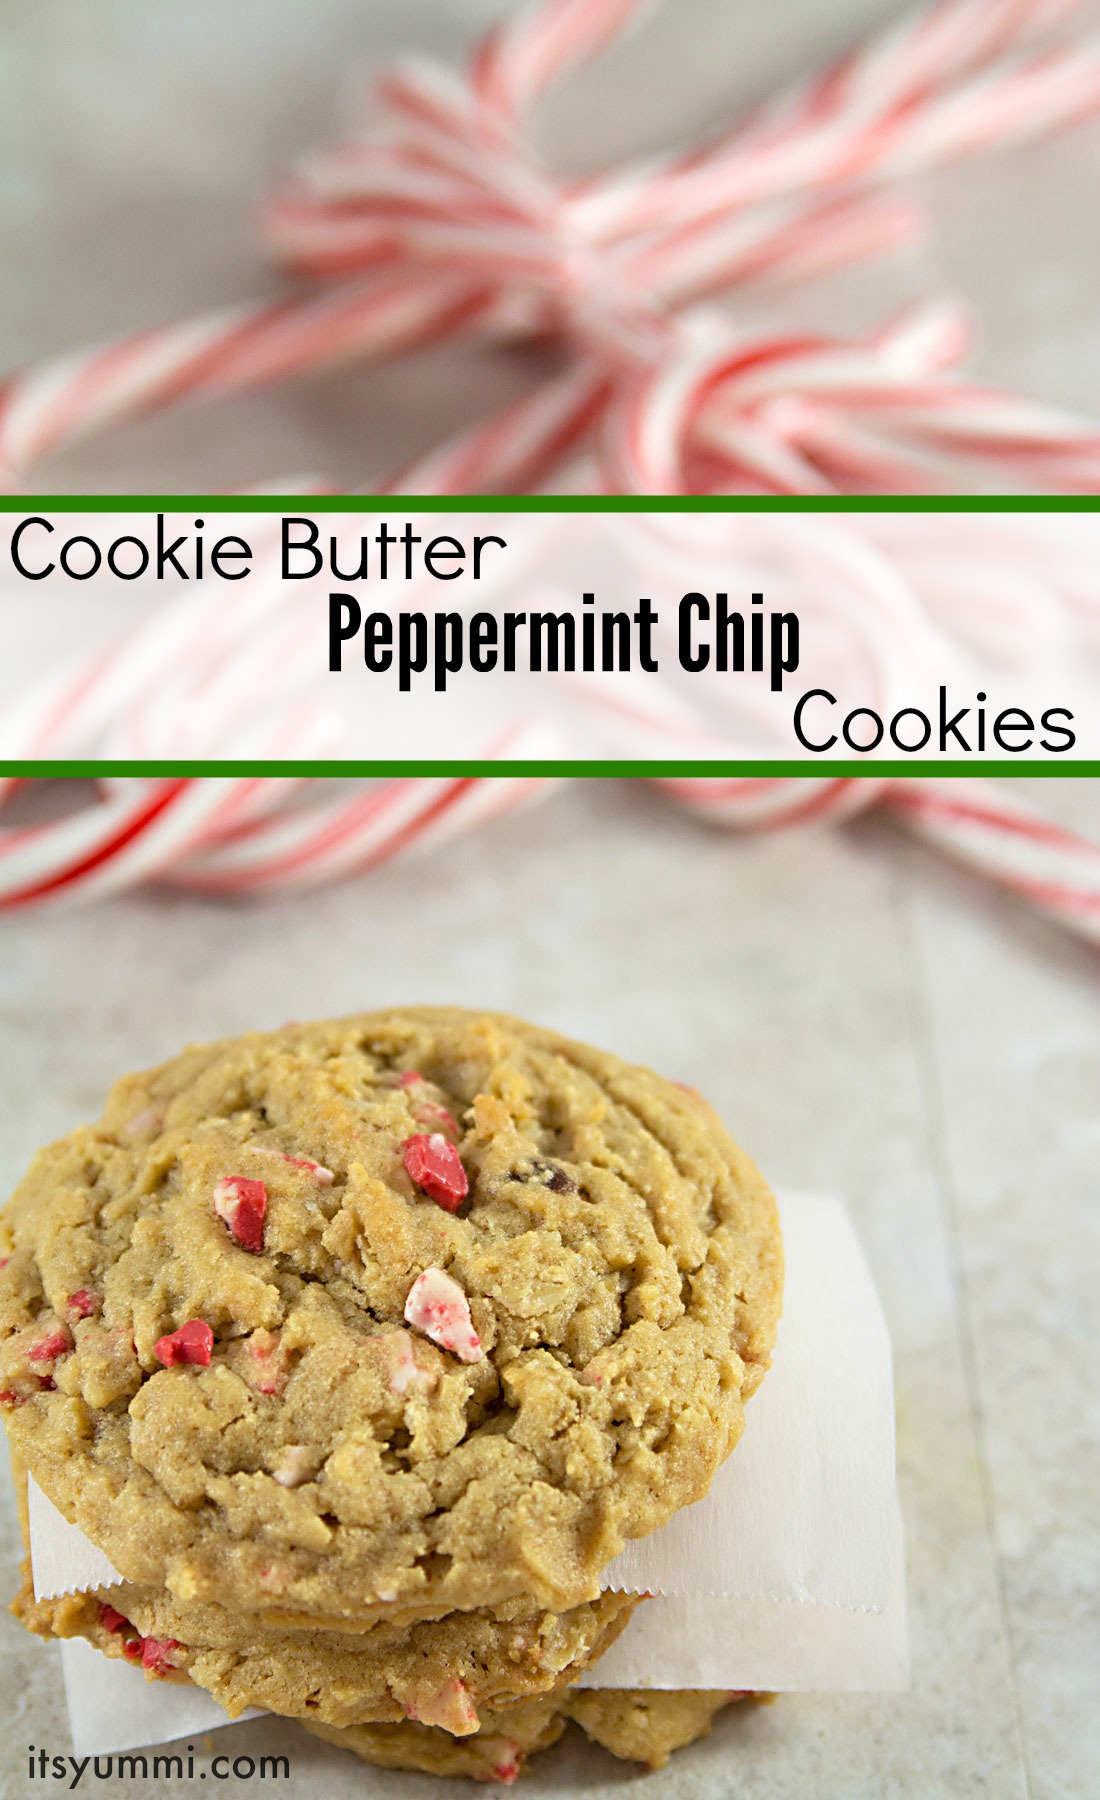 Cookie Butter Peppermint Chip Cookies from ItsYummi.com